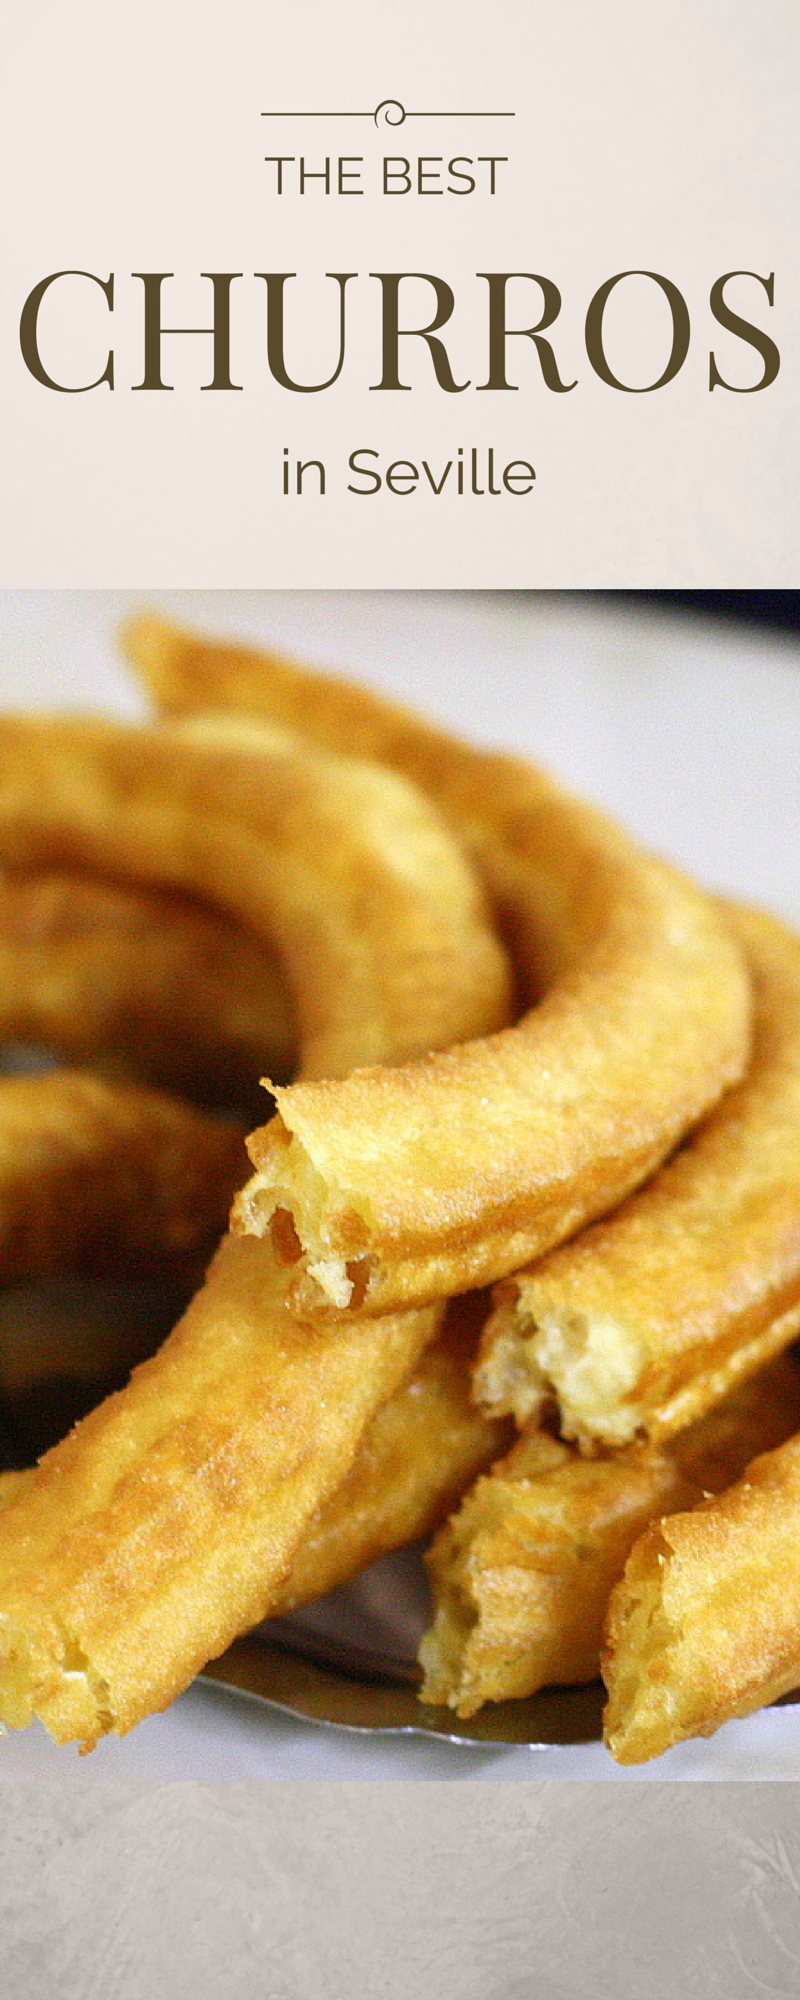 There are many places to eat churros in Seville, but here are some of our favorites. Remember– here in Spain churros vary by region in thickness and consistency. The ones in Seville are thick and airy, almost hollow in the middle at times. They are generally served for breakfast or for an afternoon snack– and never for dessert! The Best Churros in Seville. http://devoursevillefoodtours.com/best-churros-in-seville/